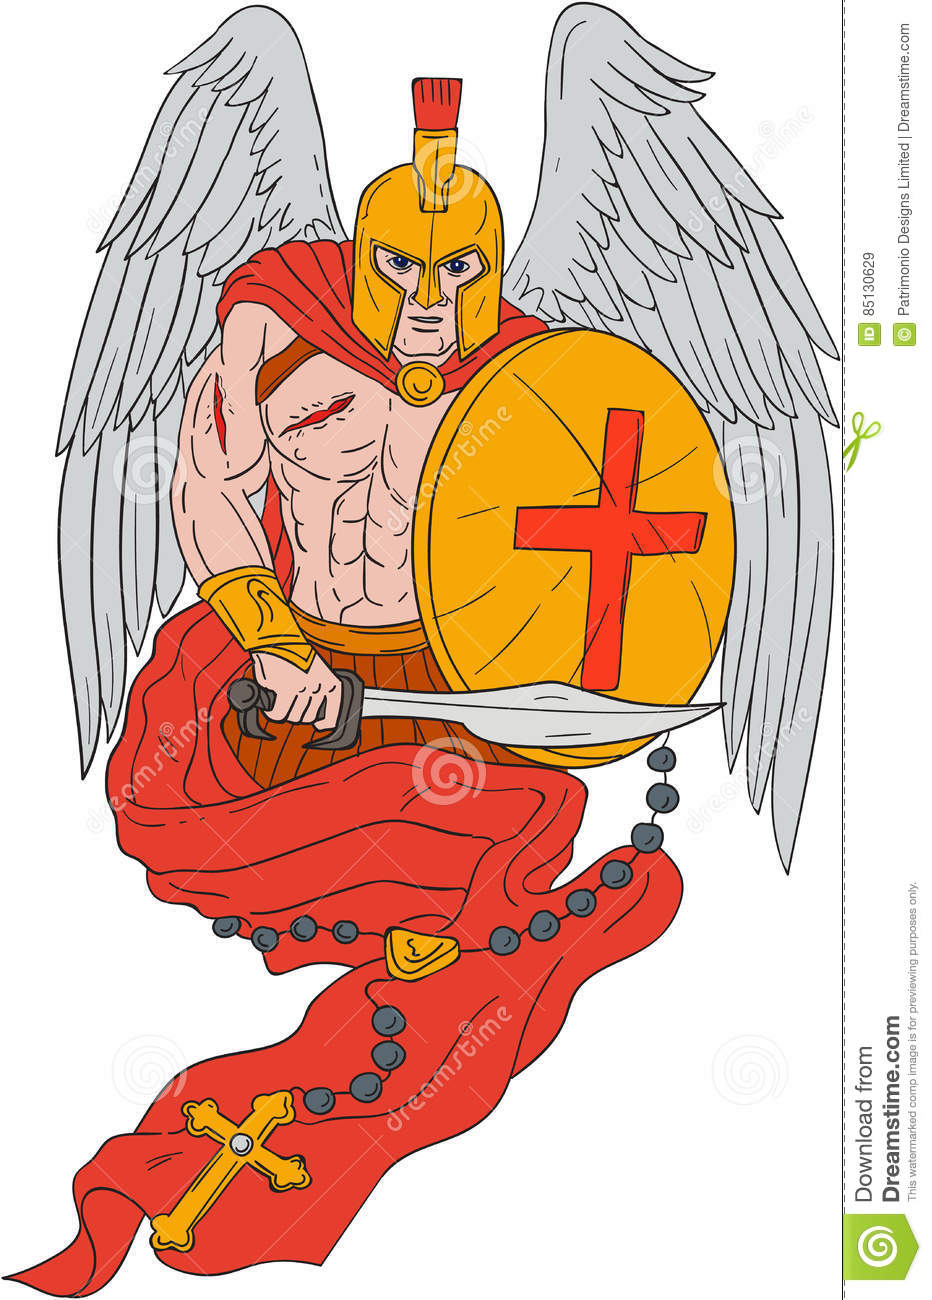 699e7edaccbb7 Drawing sketch style illustration of a wounded spartan warrior angel  wearing helmet holding sword and shield with rosary viewed from front set  on isolated ...